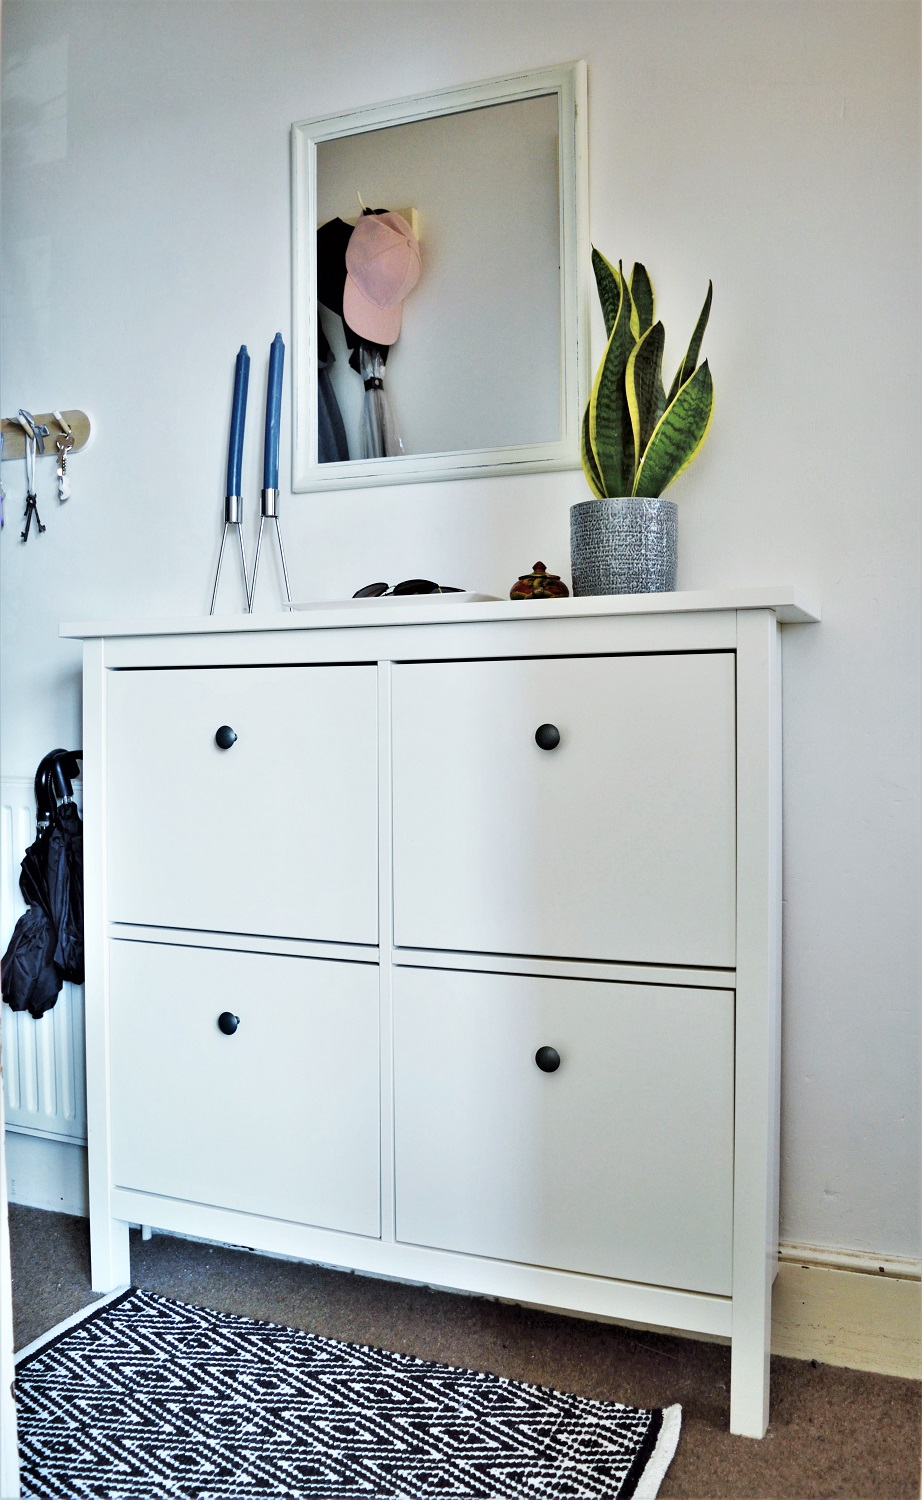 Ikea Hemnes shoe cupboard